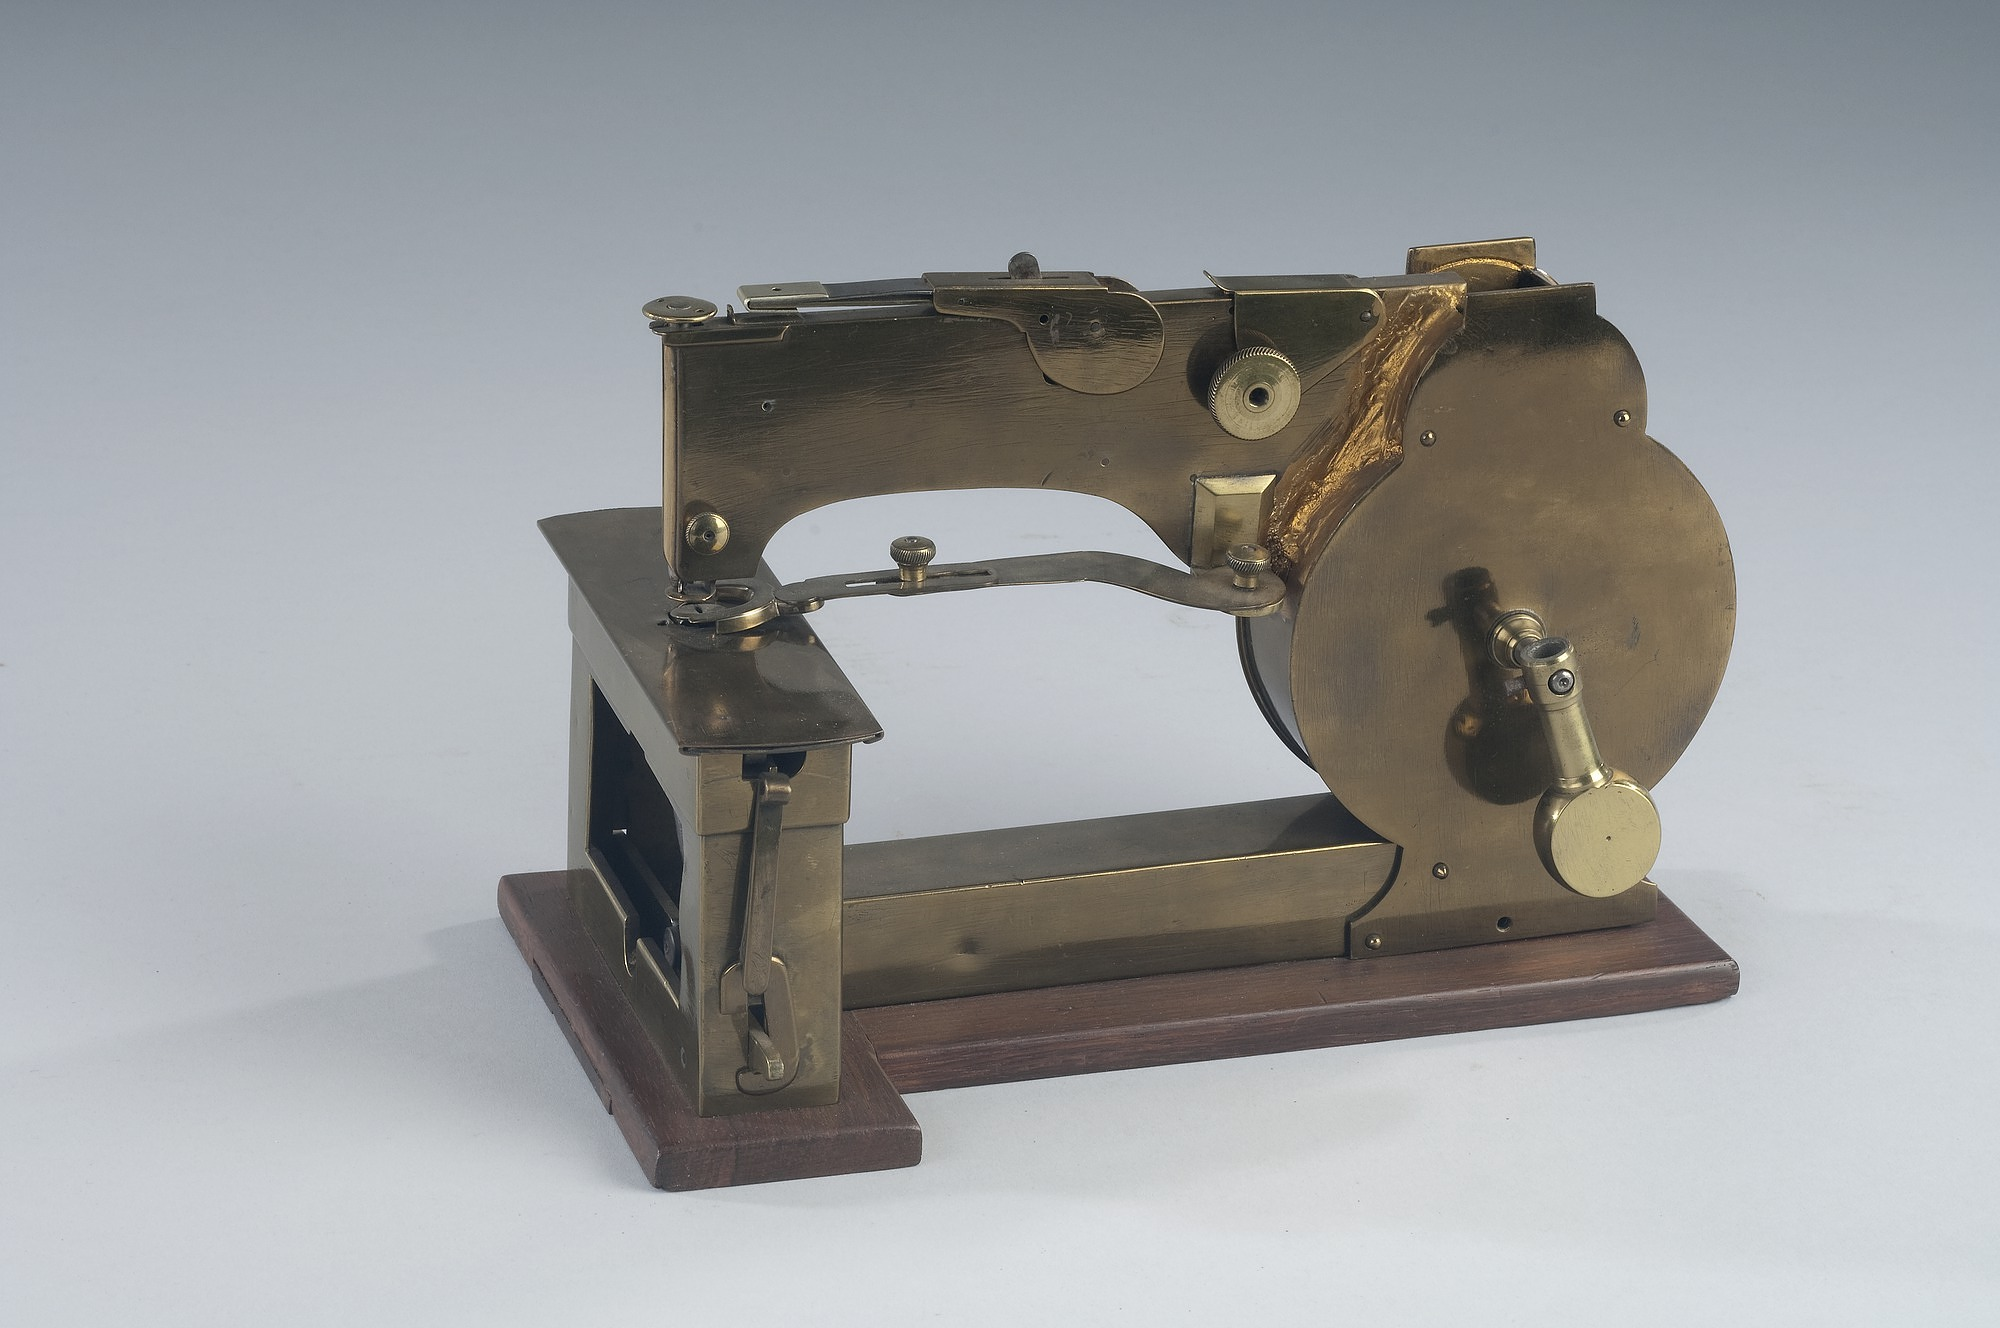 1854 Hunt's Patent Model of a Sewing Machine | National Museum of